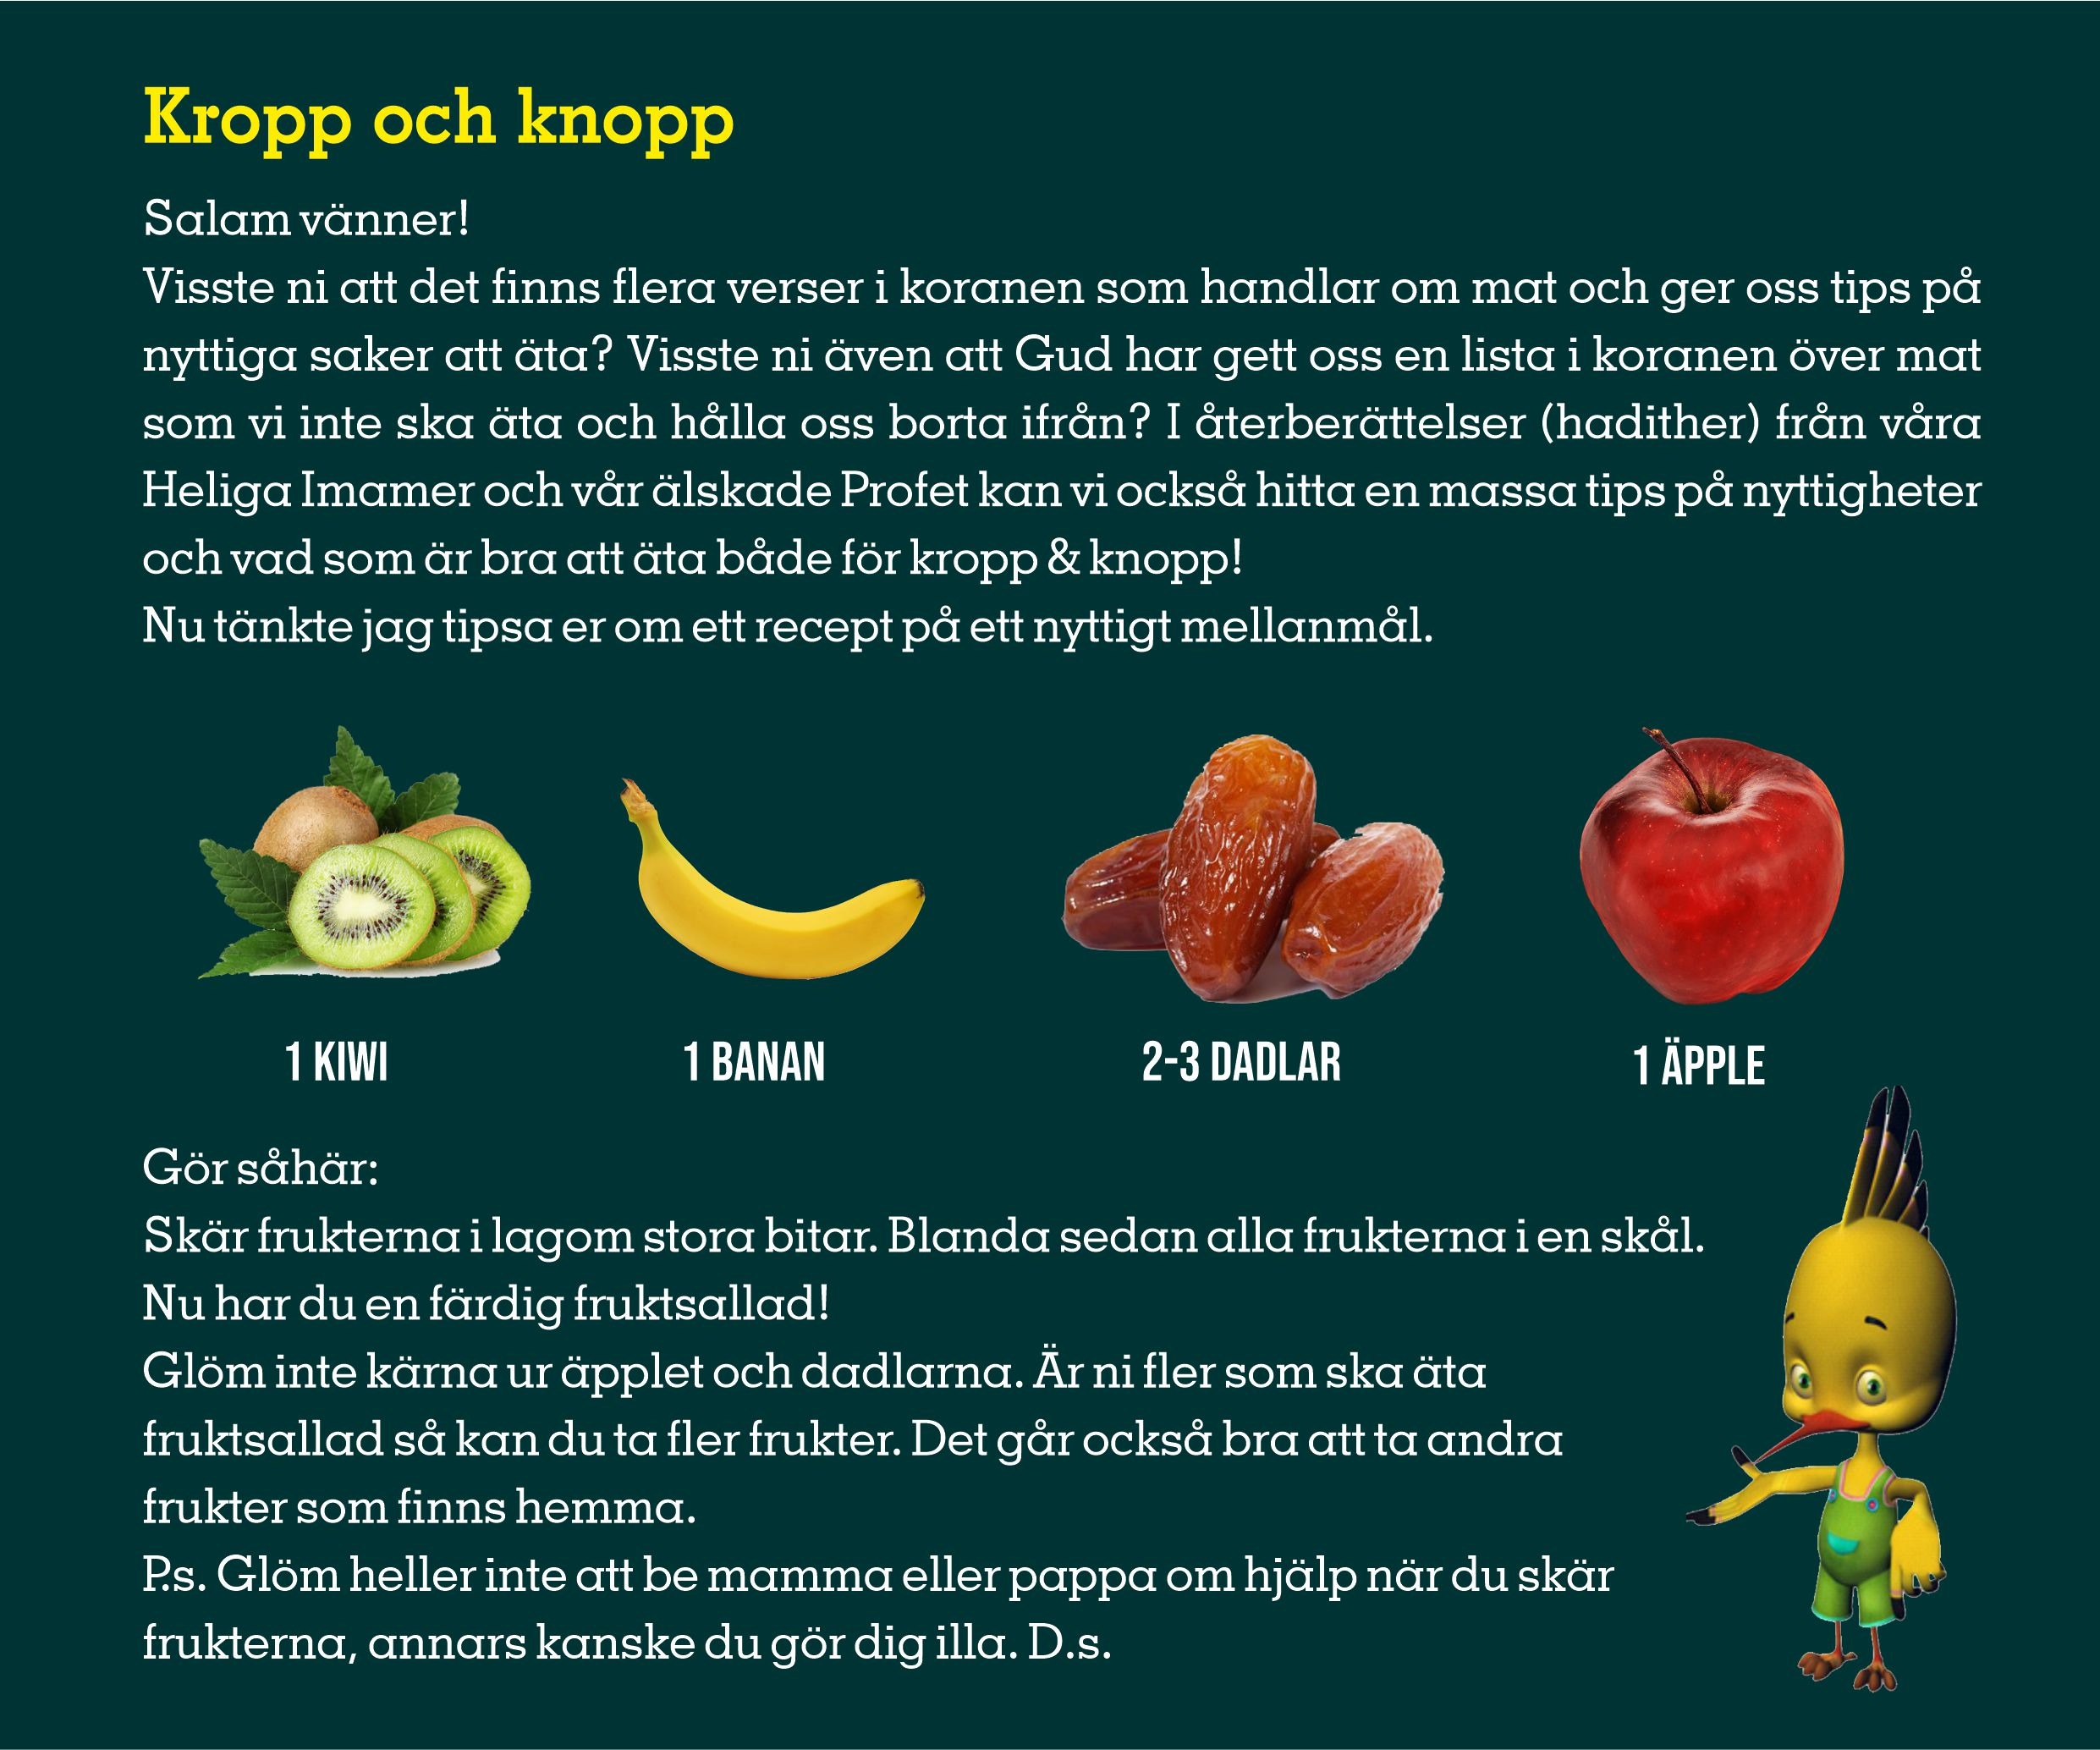 Photo of Kropp och knopp